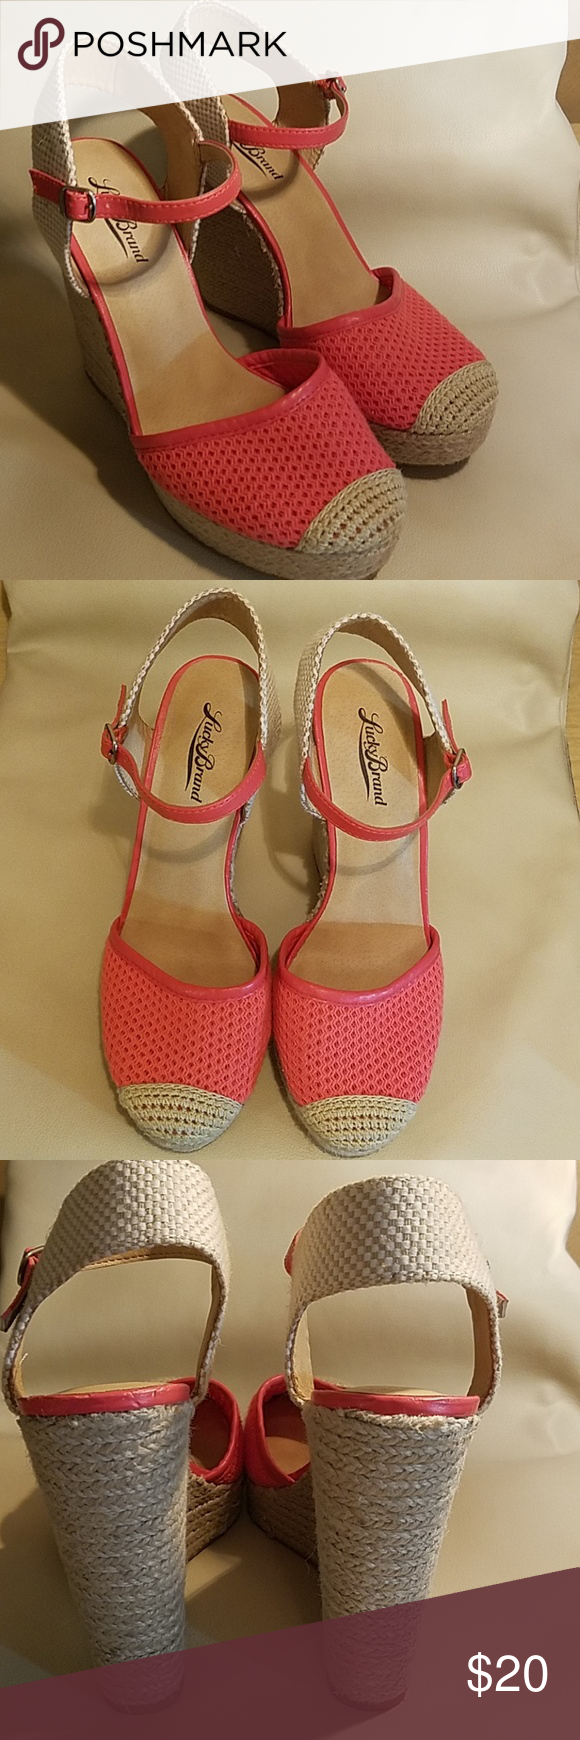 2a6e4594871 Lucky Brand Reandra Woven Espadrlle Wedges New! Woven and Coral lucky brand Reandra  Espadrille Platform. Heel 5 inches with adjustable ankle straps Lucky ...